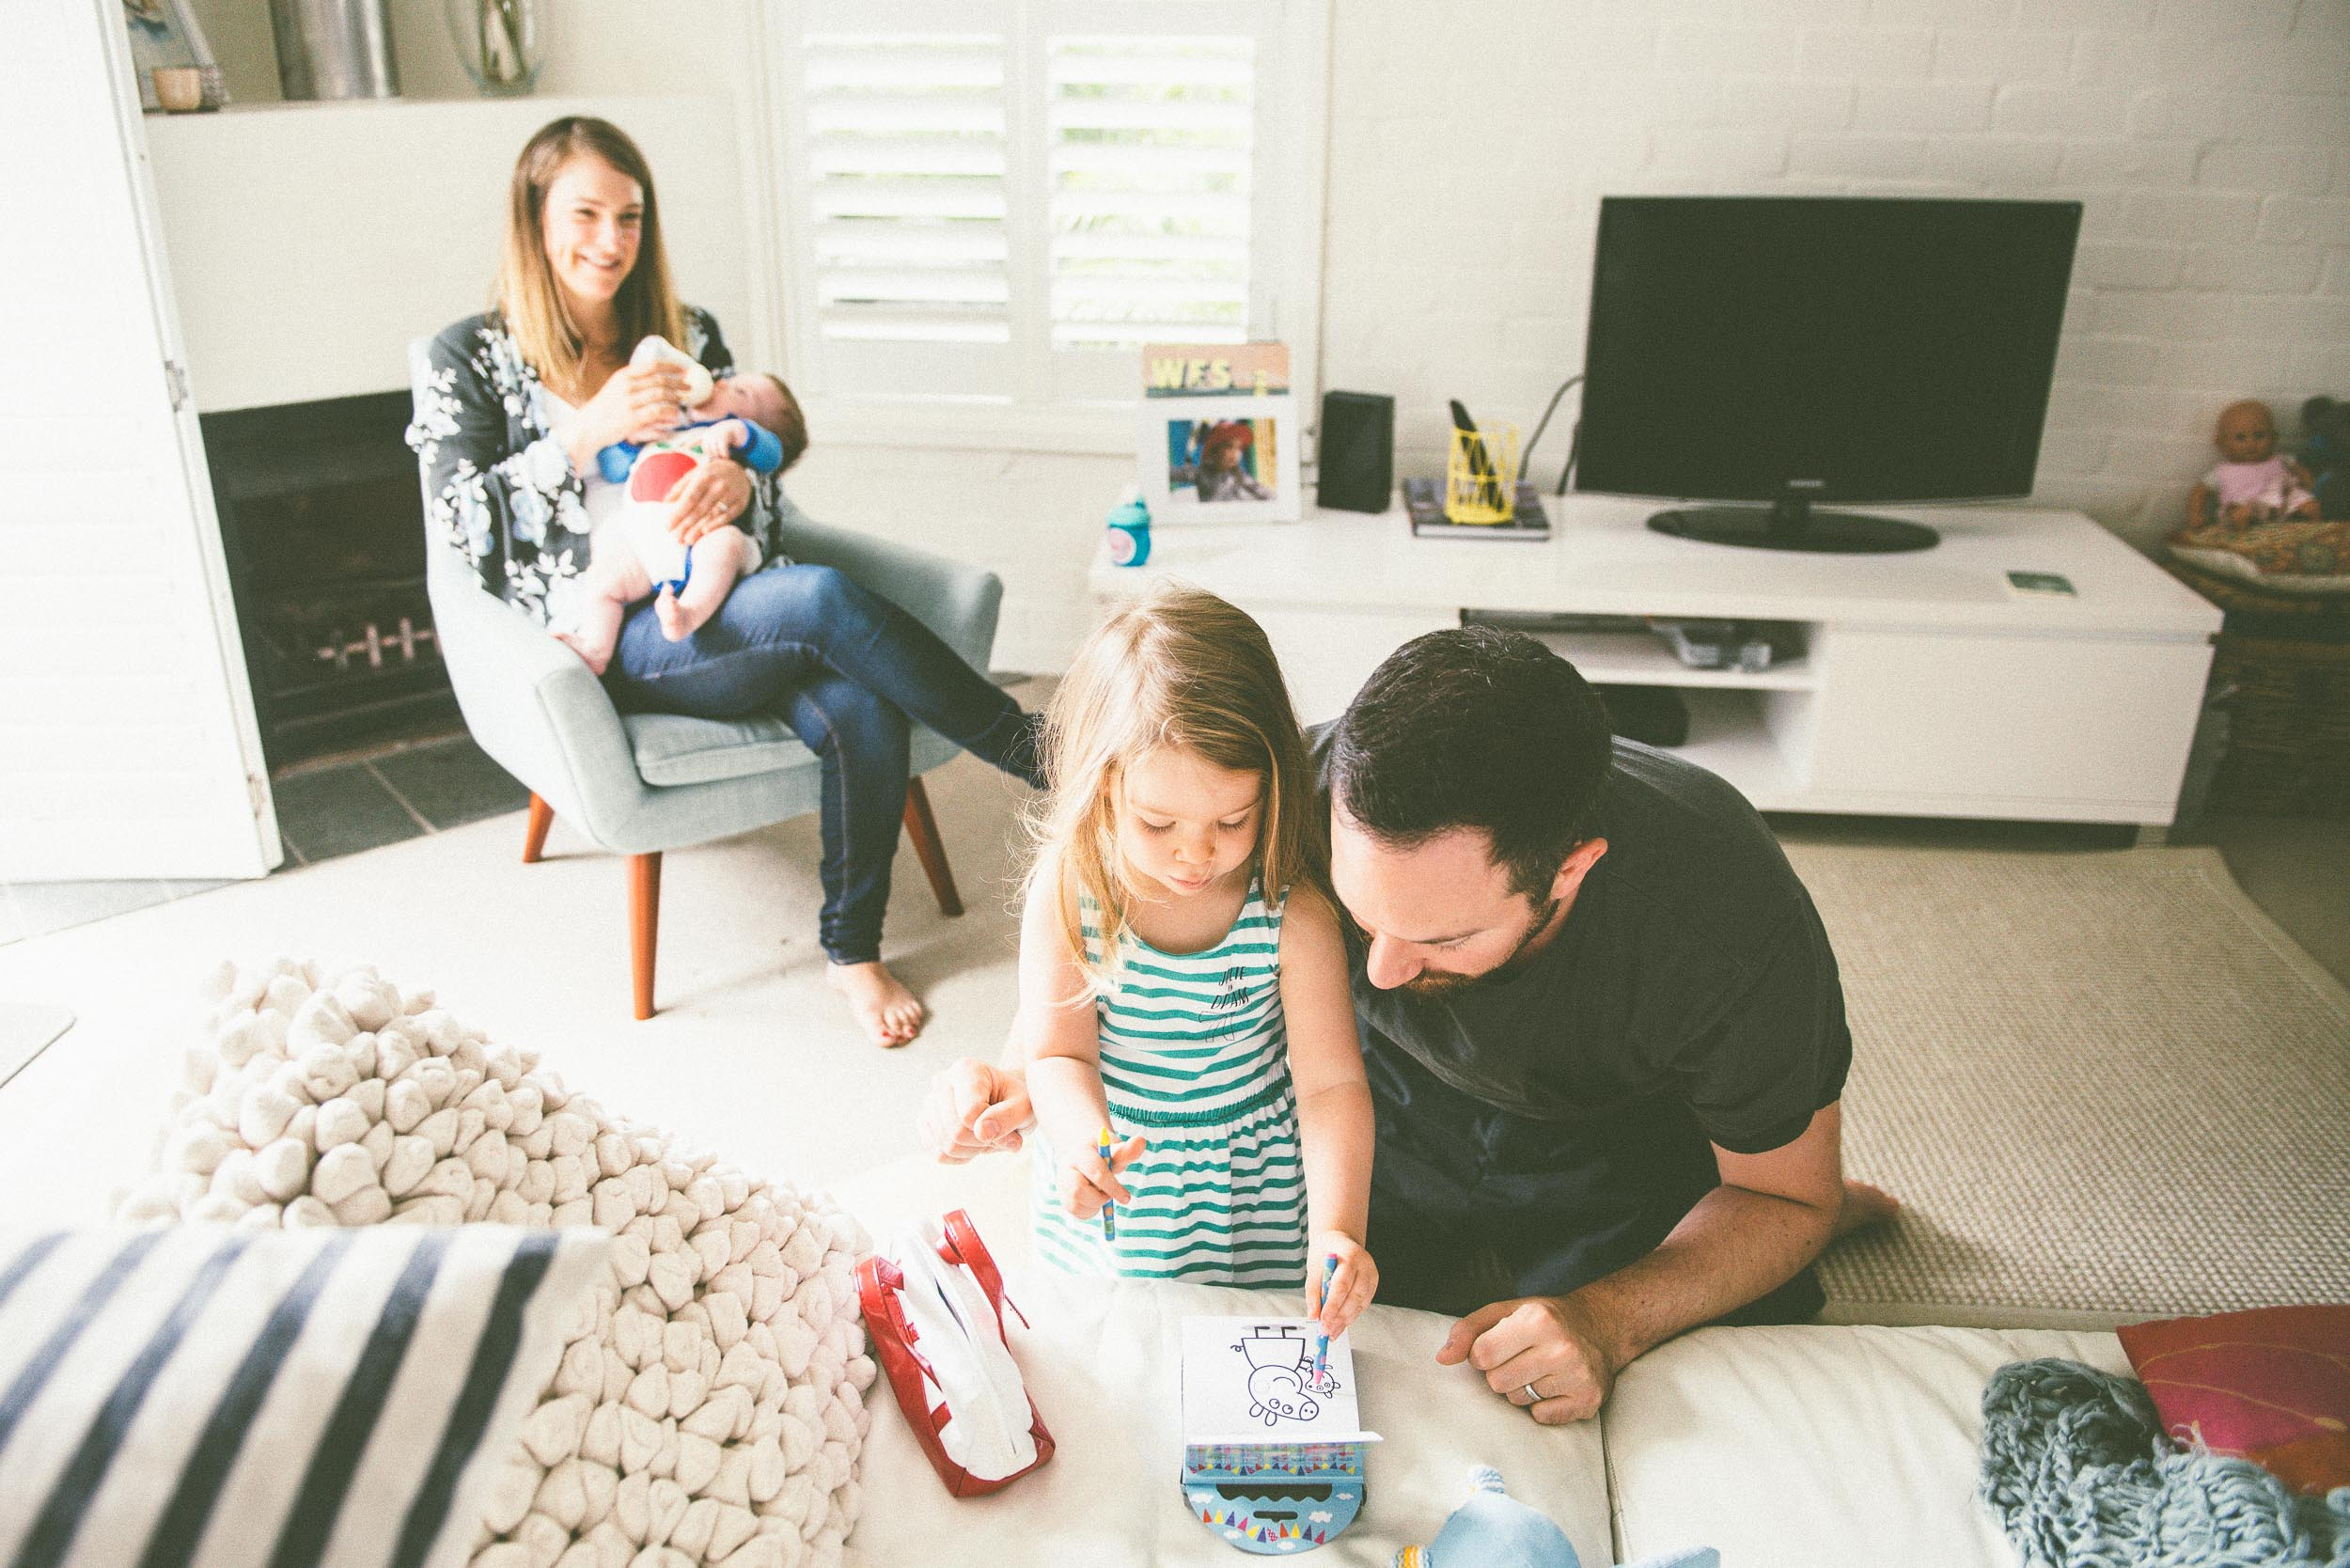 Family at home - Lifestyle - Photo credit Nicola Bailey.jpg